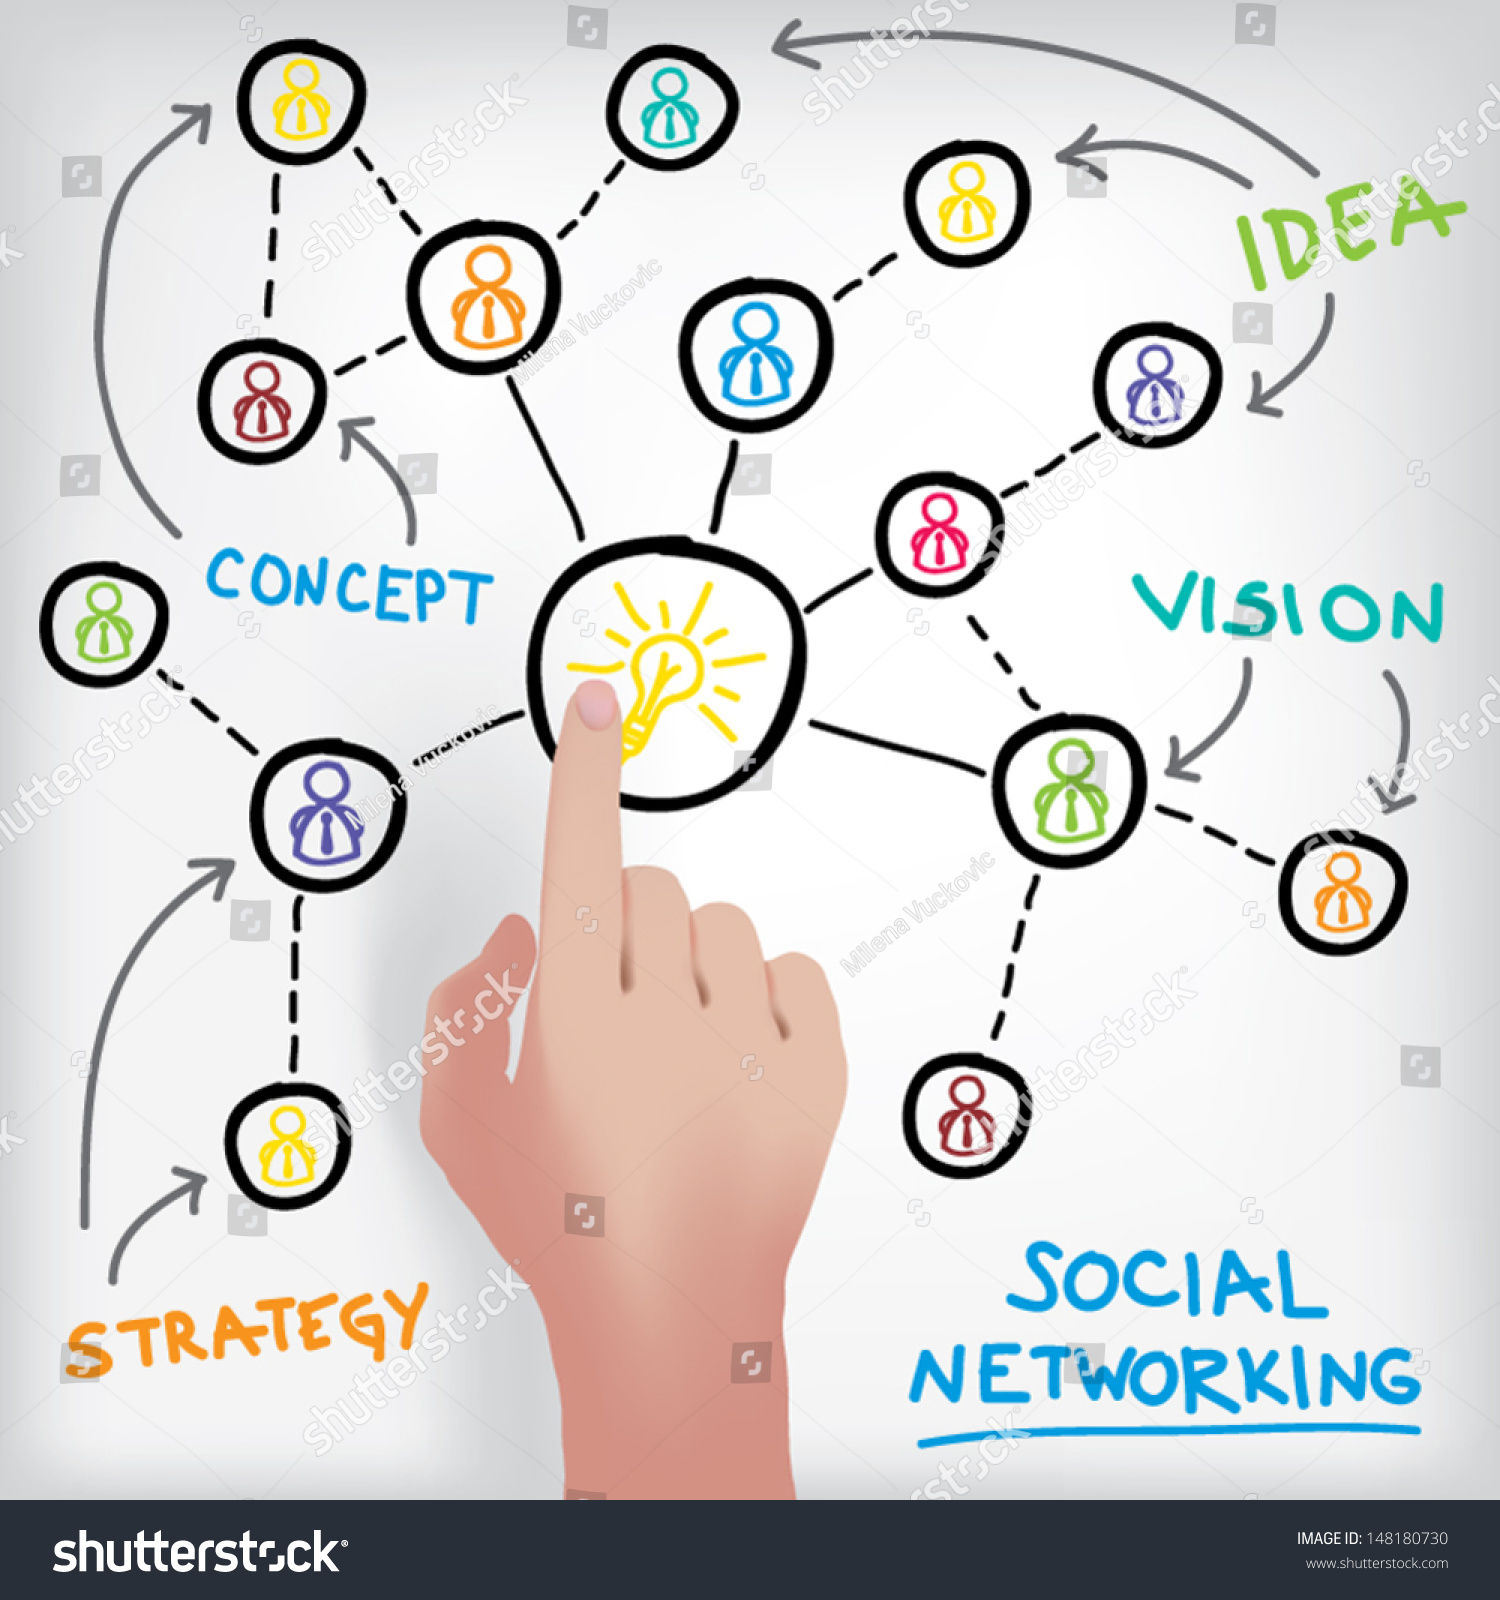 social networking scheme business idea strategy stock vector social networking scheme business idea strategy and success concept hand showing the light